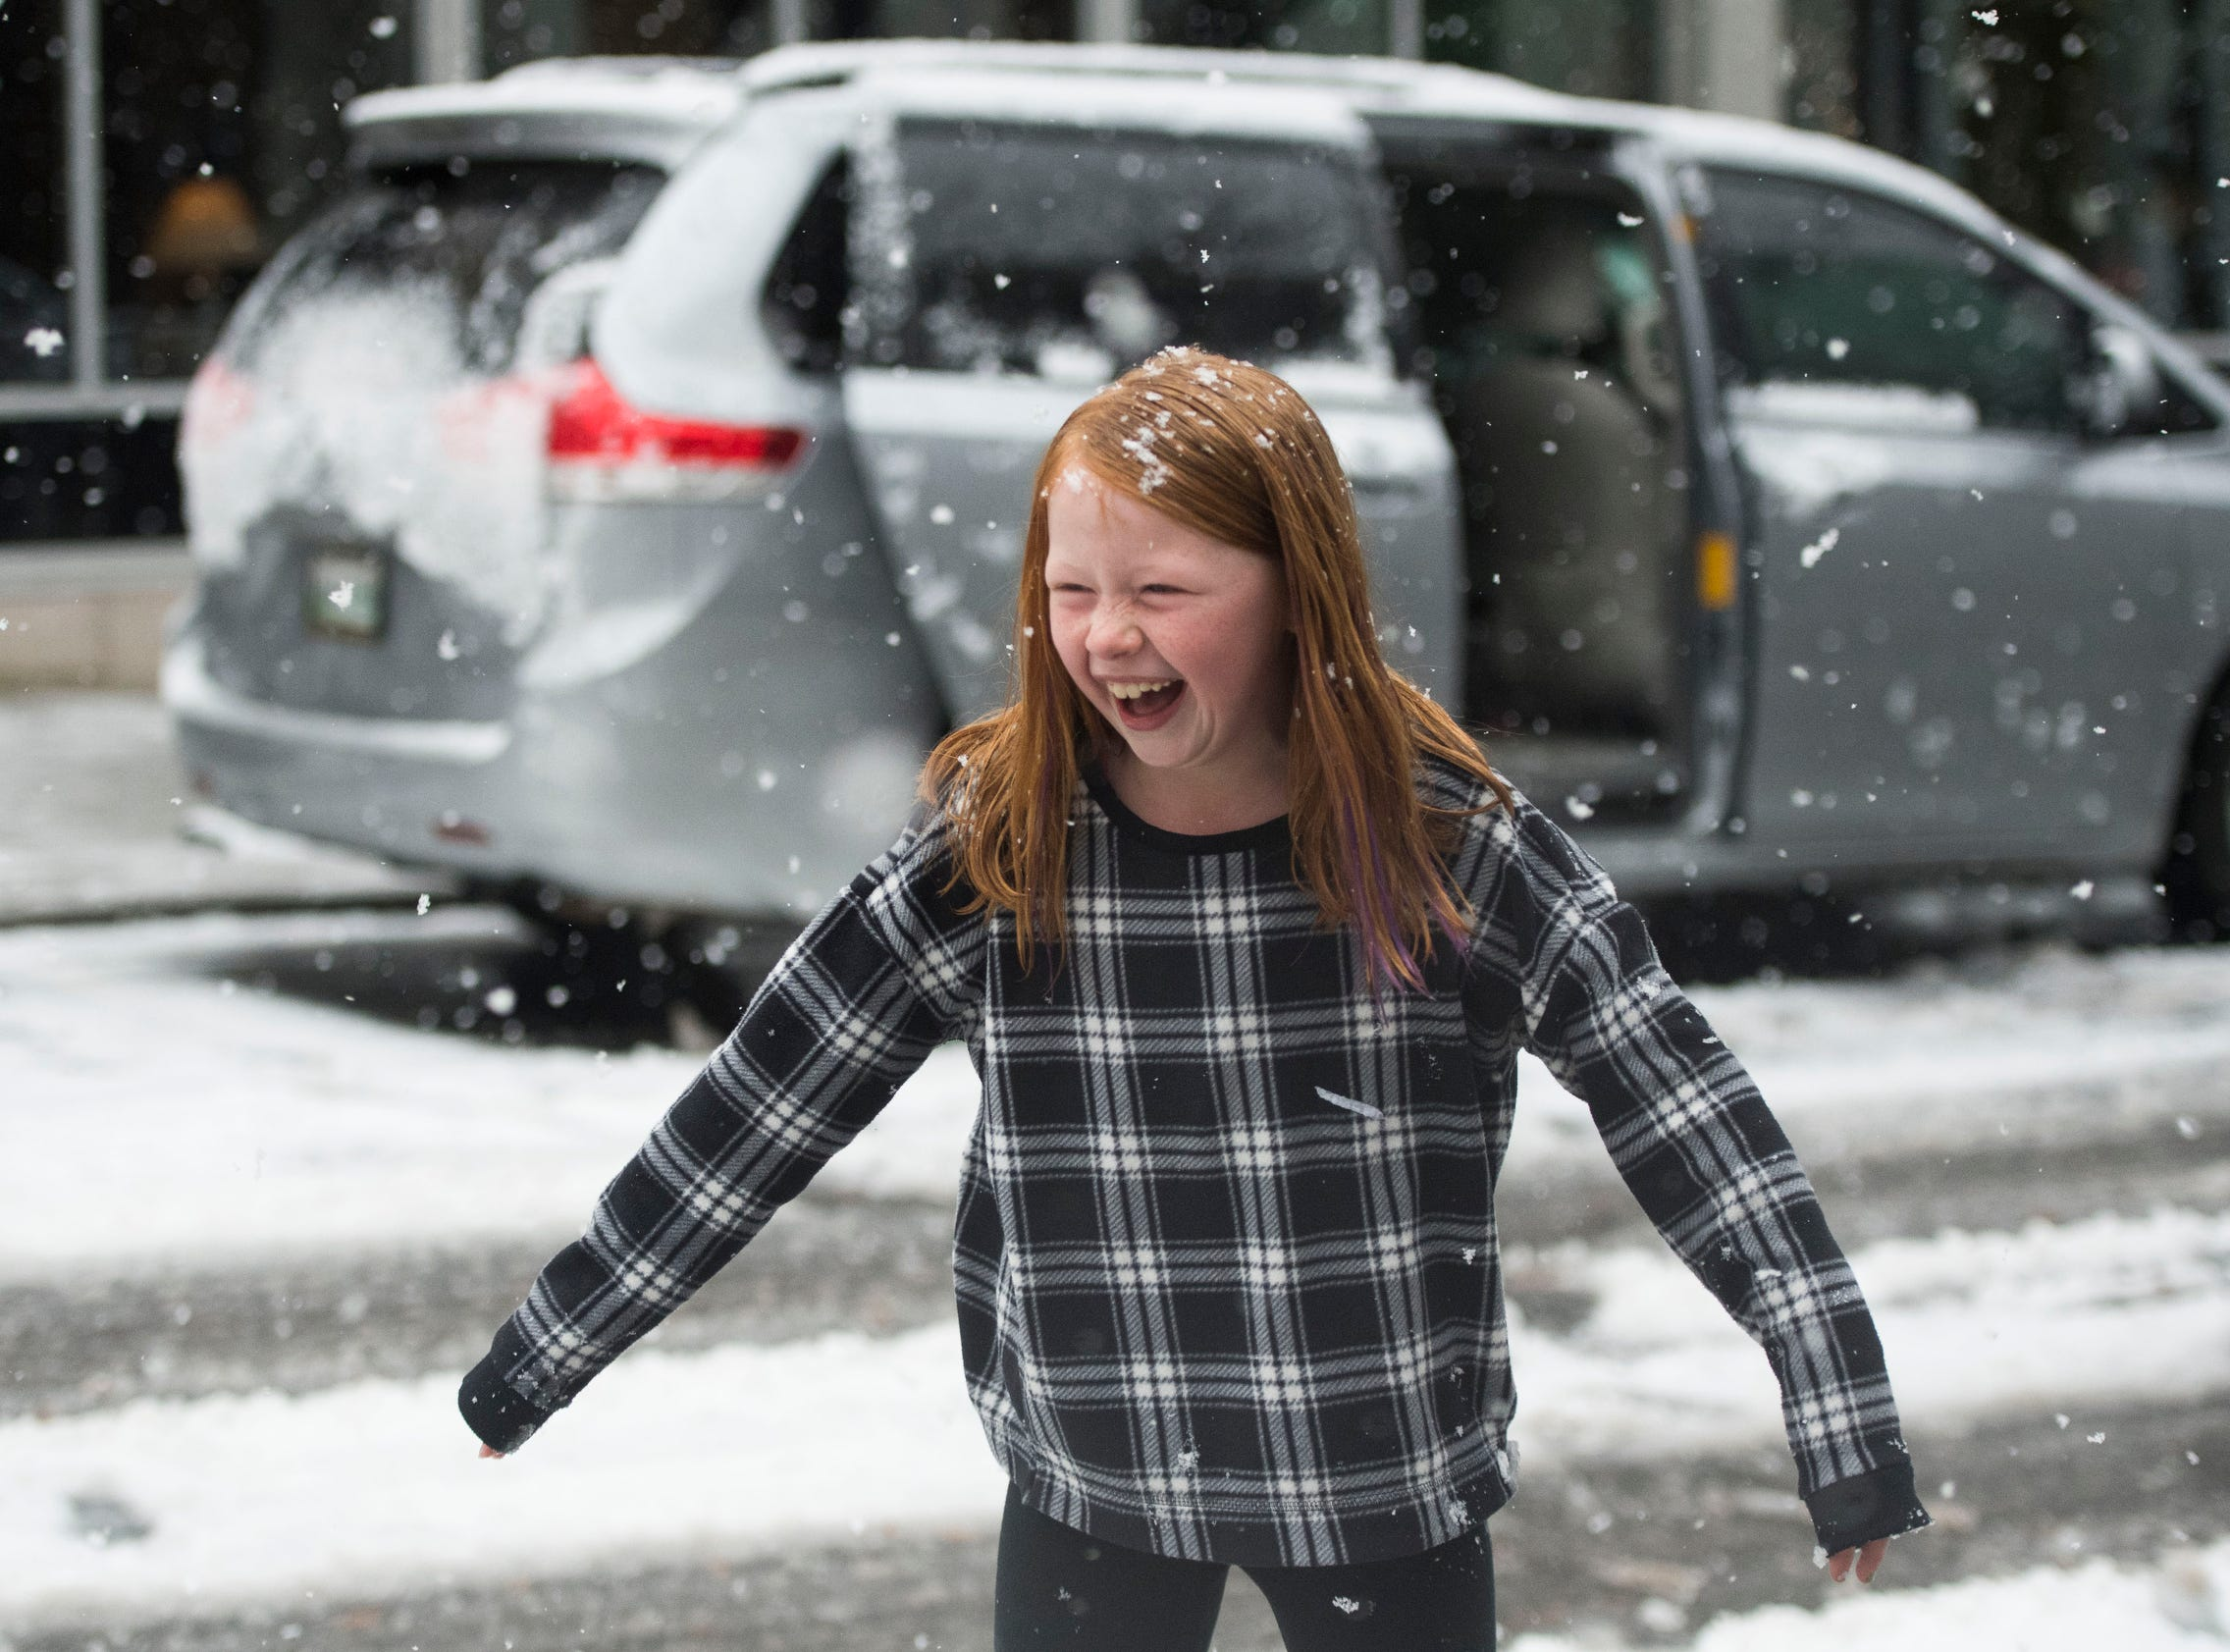 Emilia Eveland, 8, laughs during a snow fight between her brothers and dad in Downtown Knoxville on Sunday,